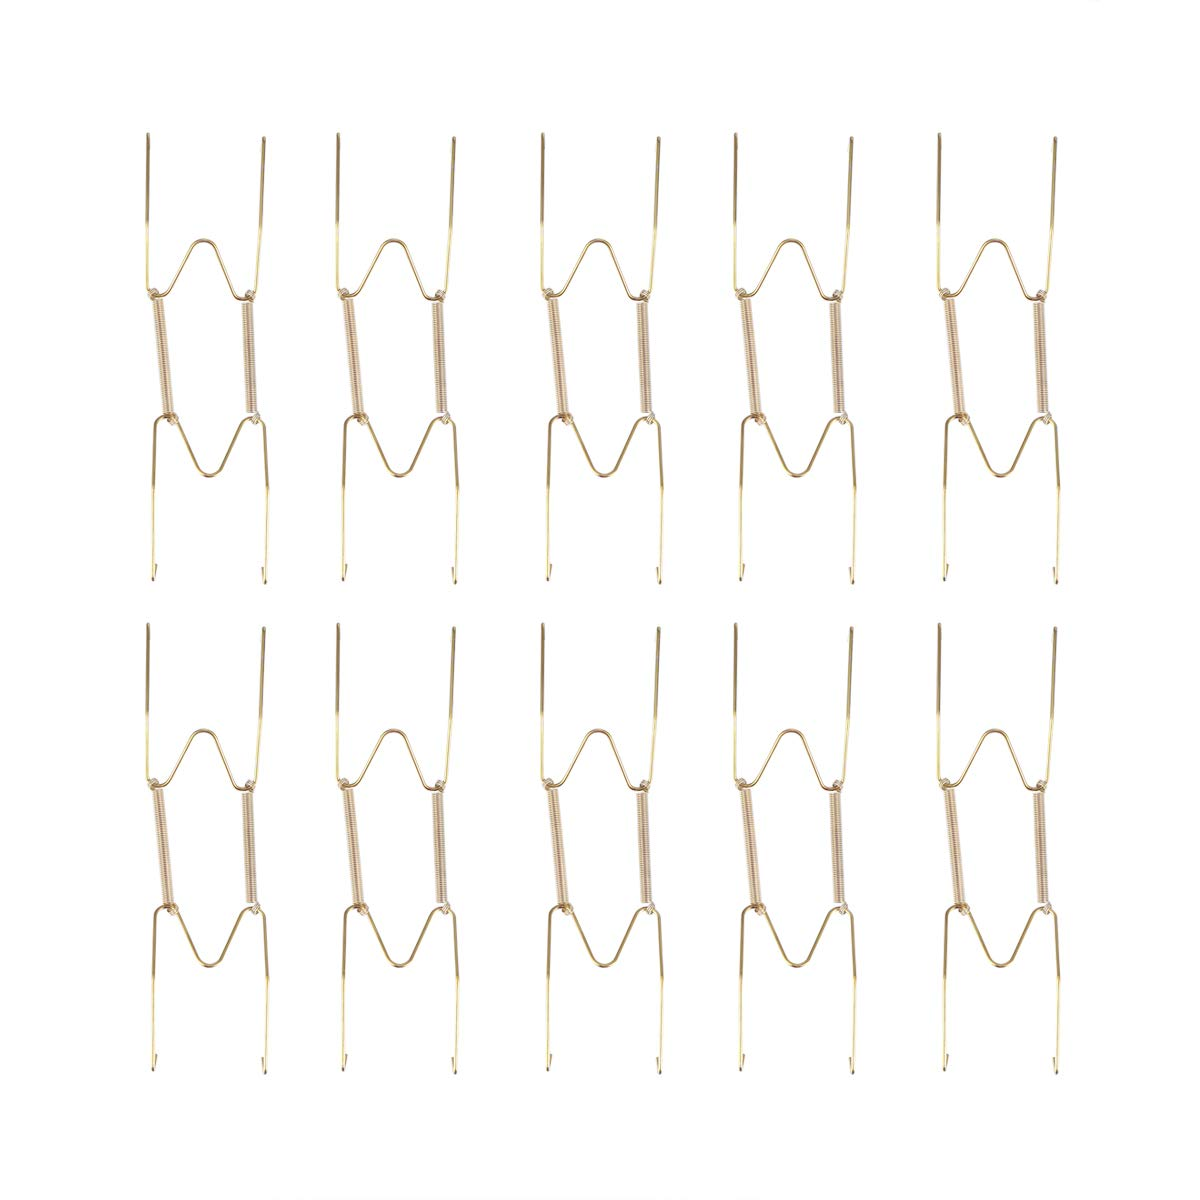 Dorado TOPBATHY 10pcs 8 Pulgadas de Acero Inoxidable Colgadores de Placa de Pared Ganchos de Pared Pantalla Decorativa para Platos Titulares Ganchos de Pared Decoraci/ón